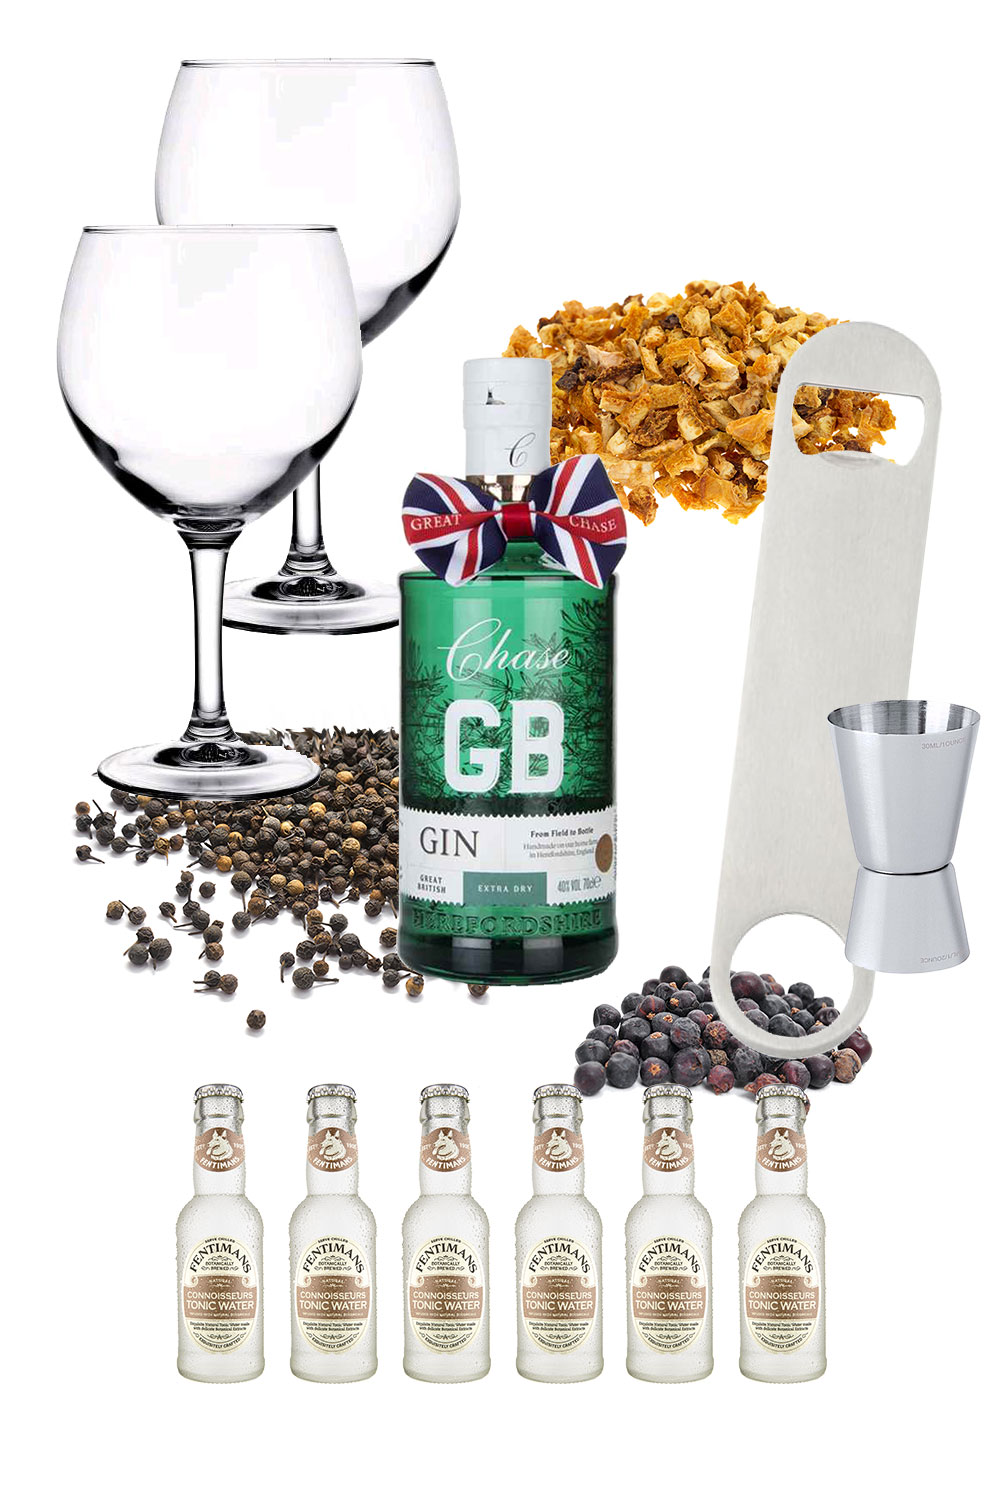 Williams Chase GB – Mission Ginpossible